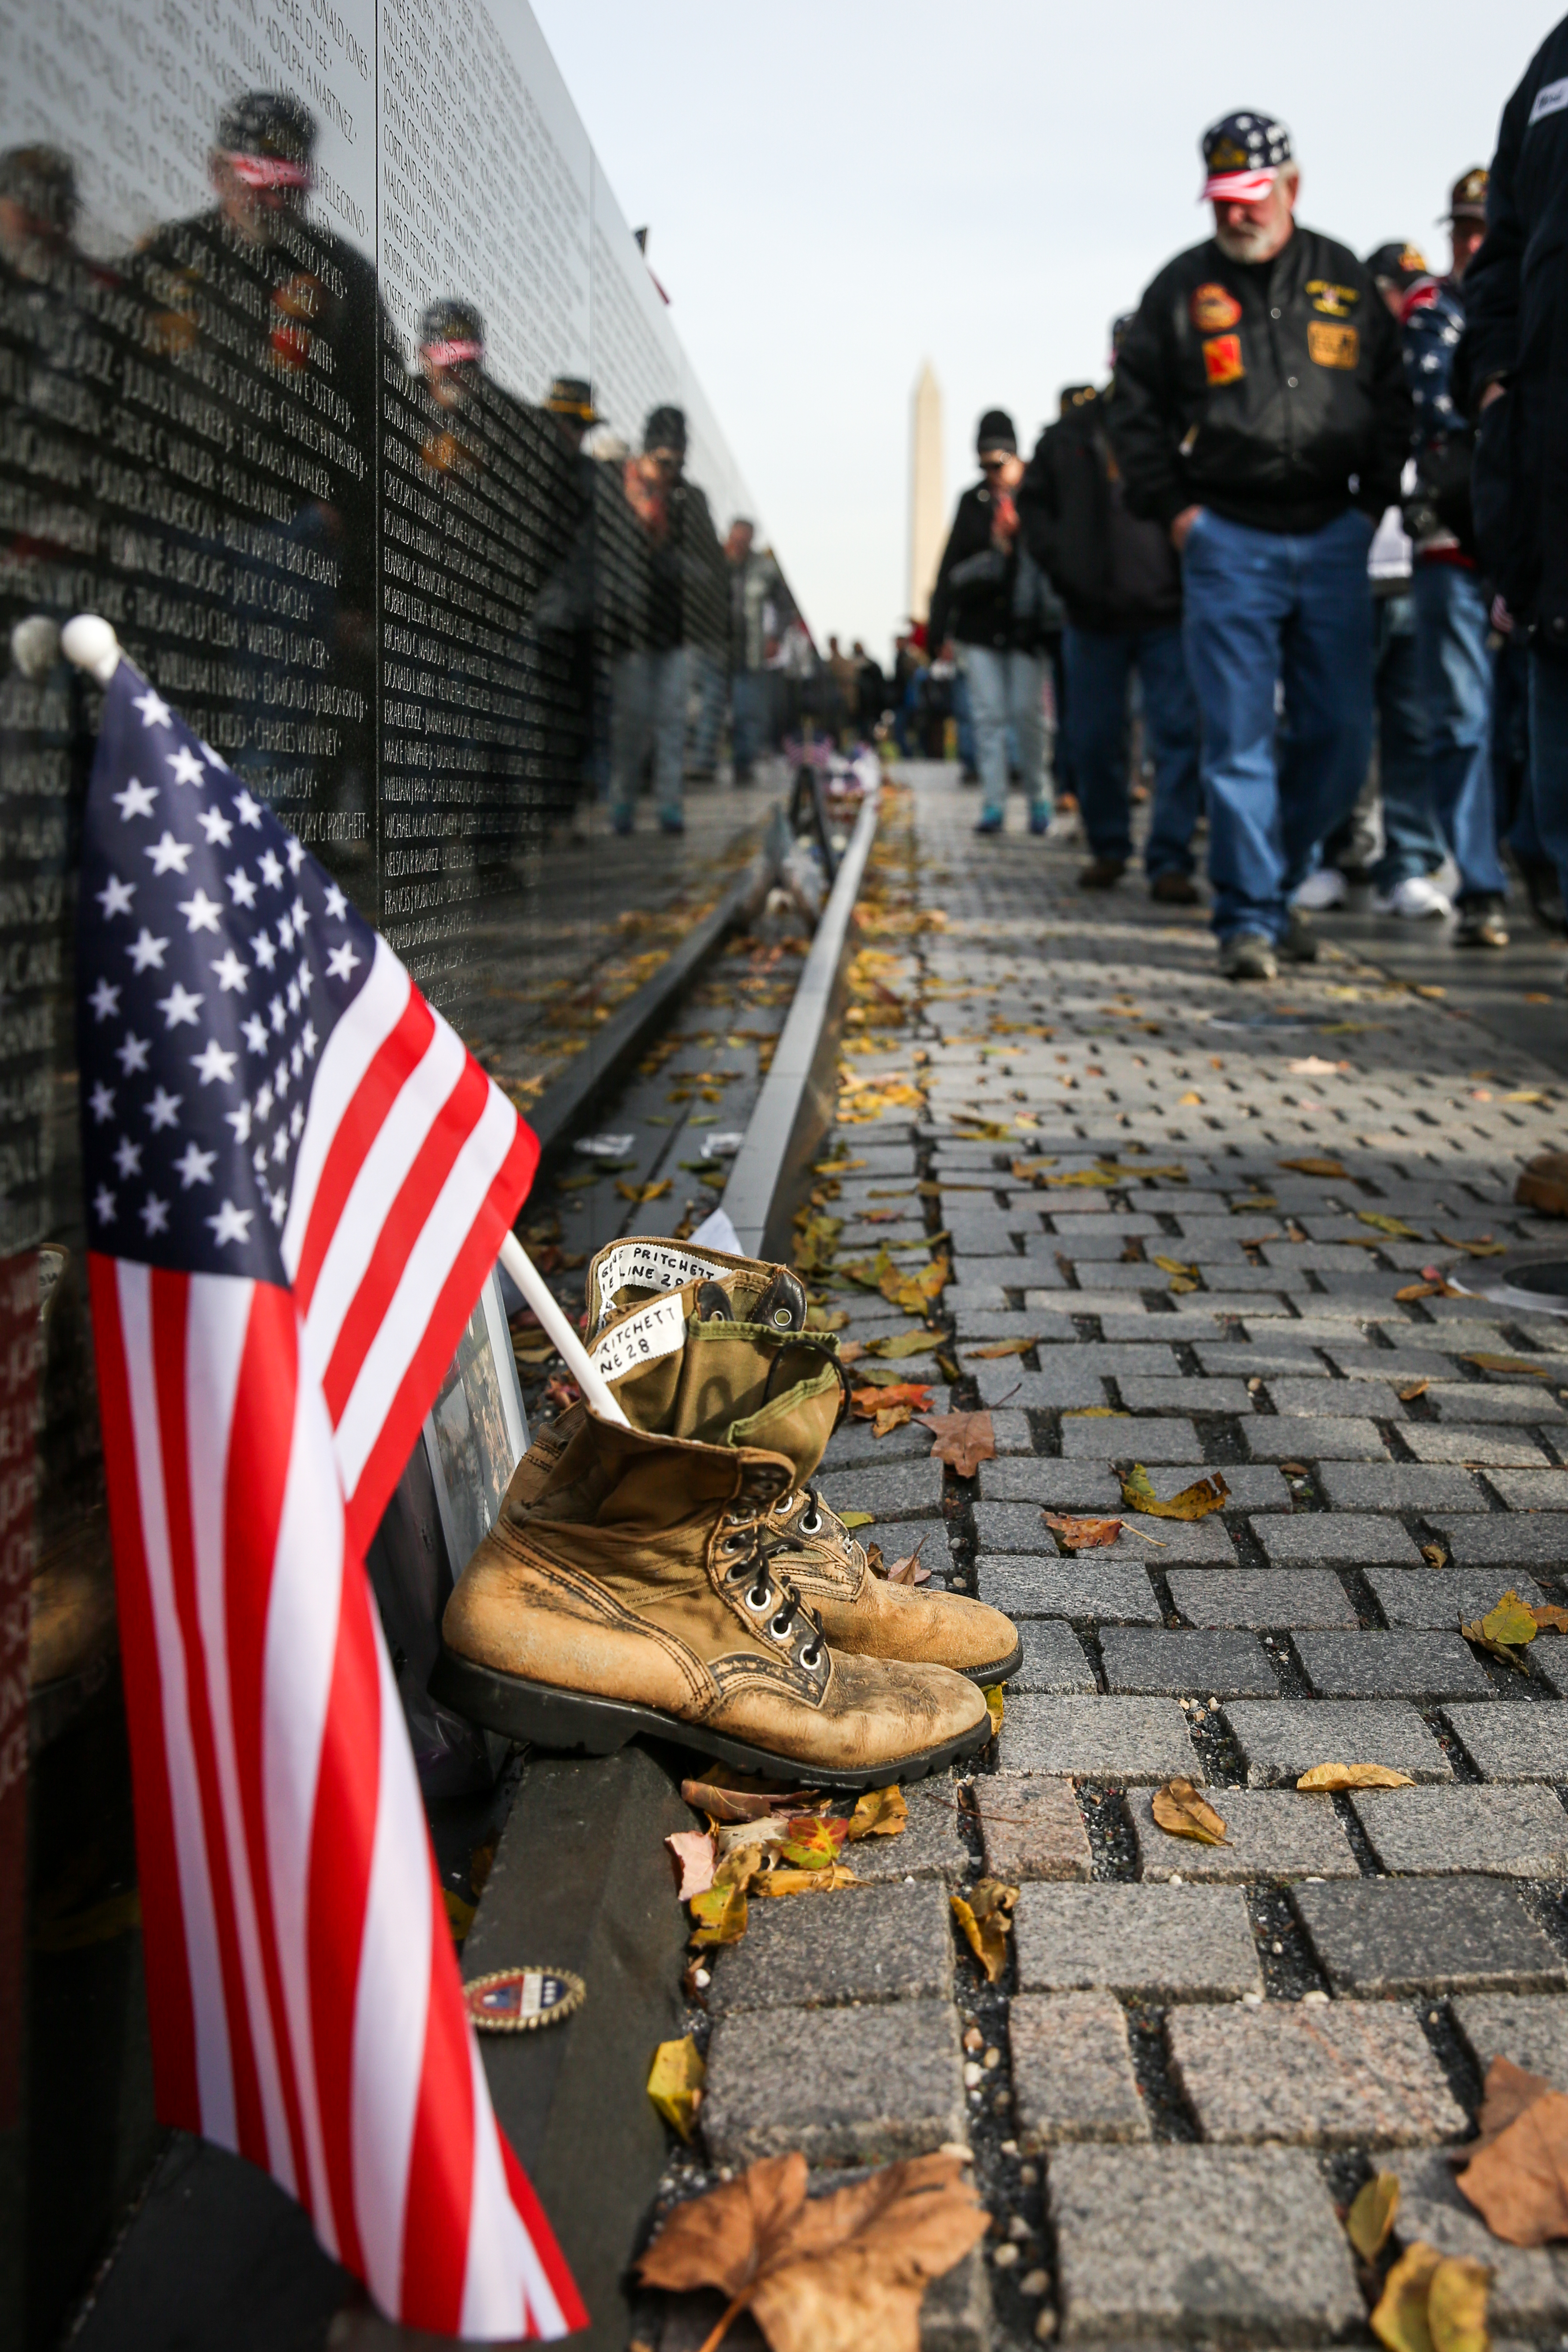 November, 2017. Veterans view the Vietnam Memorial on Veteran's Day.{&amp;nbsp;} (Amanda Andrade-Rhoades/DC Refined)<p></p>